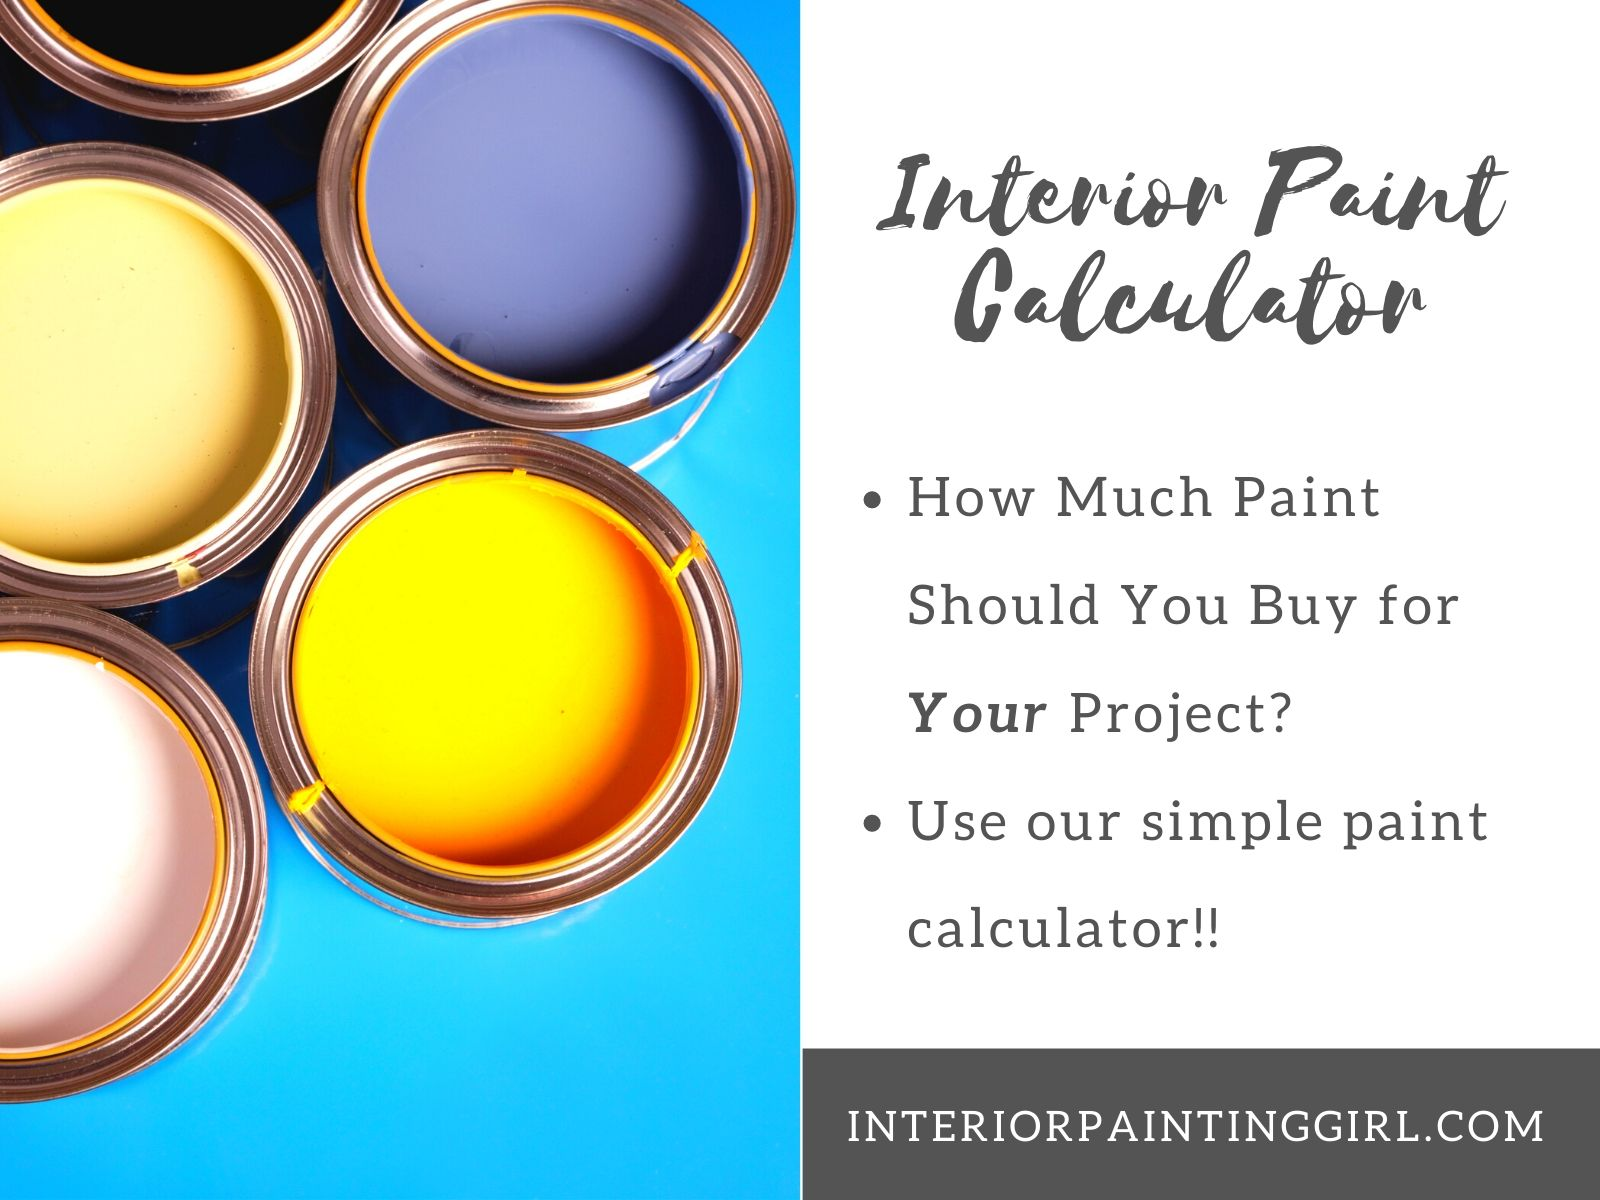 How Much Paint To Buy? Use our interior paint calculator to determine how much paint you need!